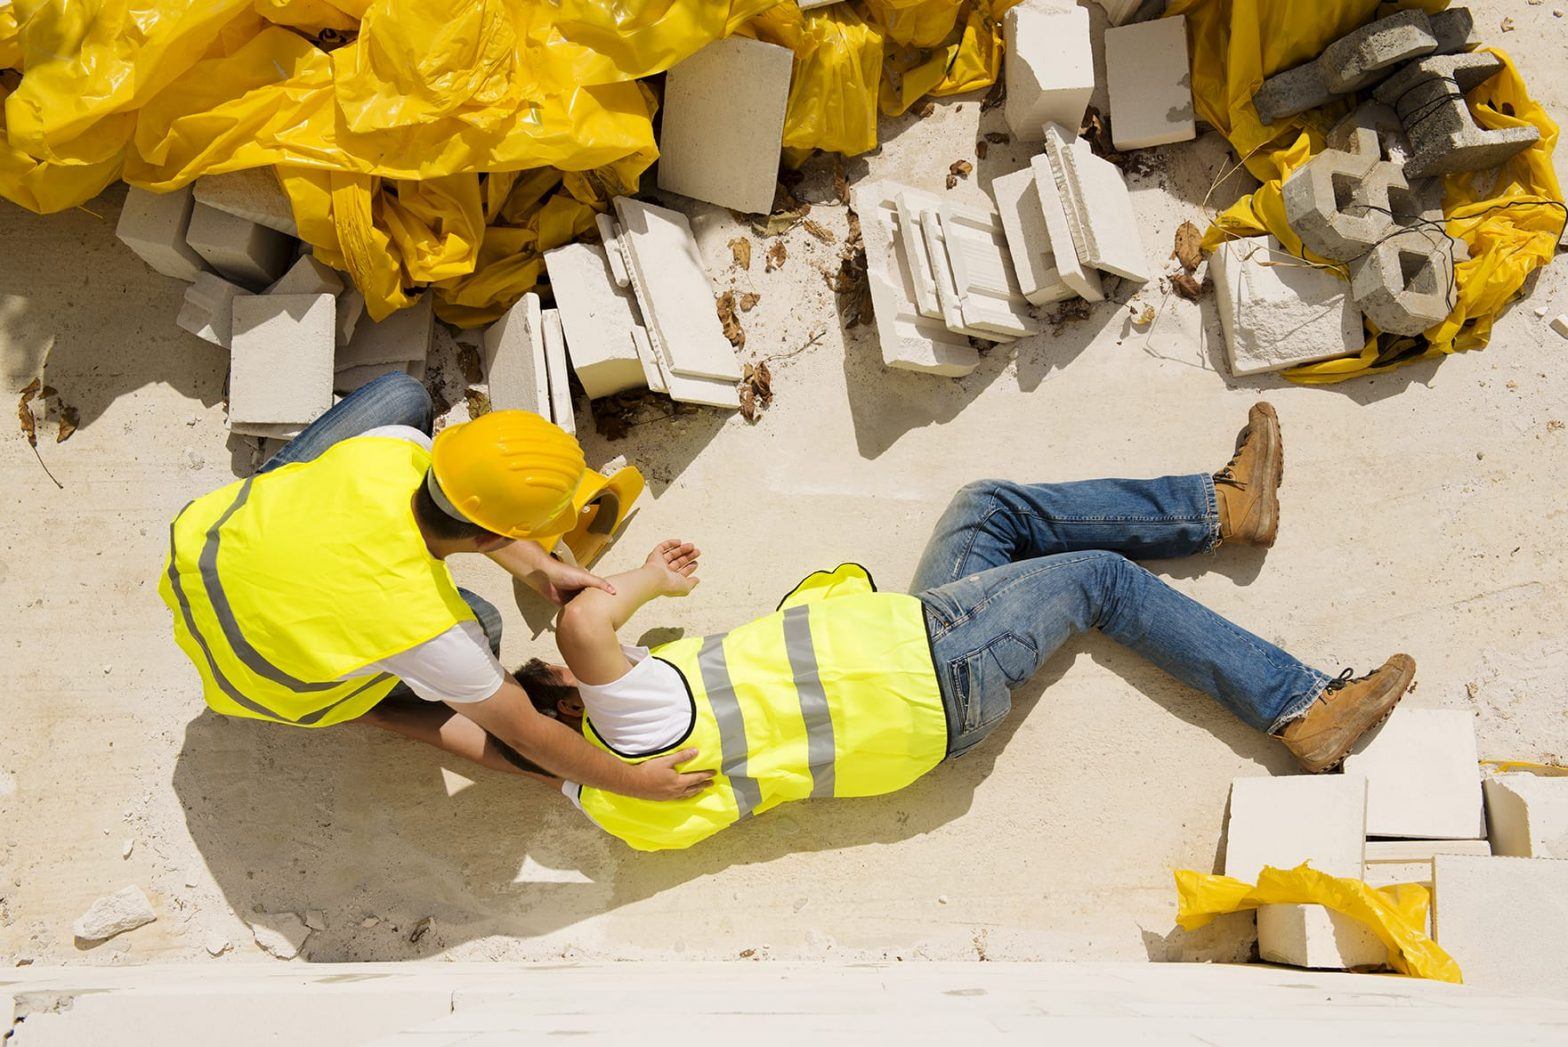 How to Tell When Your Employer Is Negligent With Employee Safety